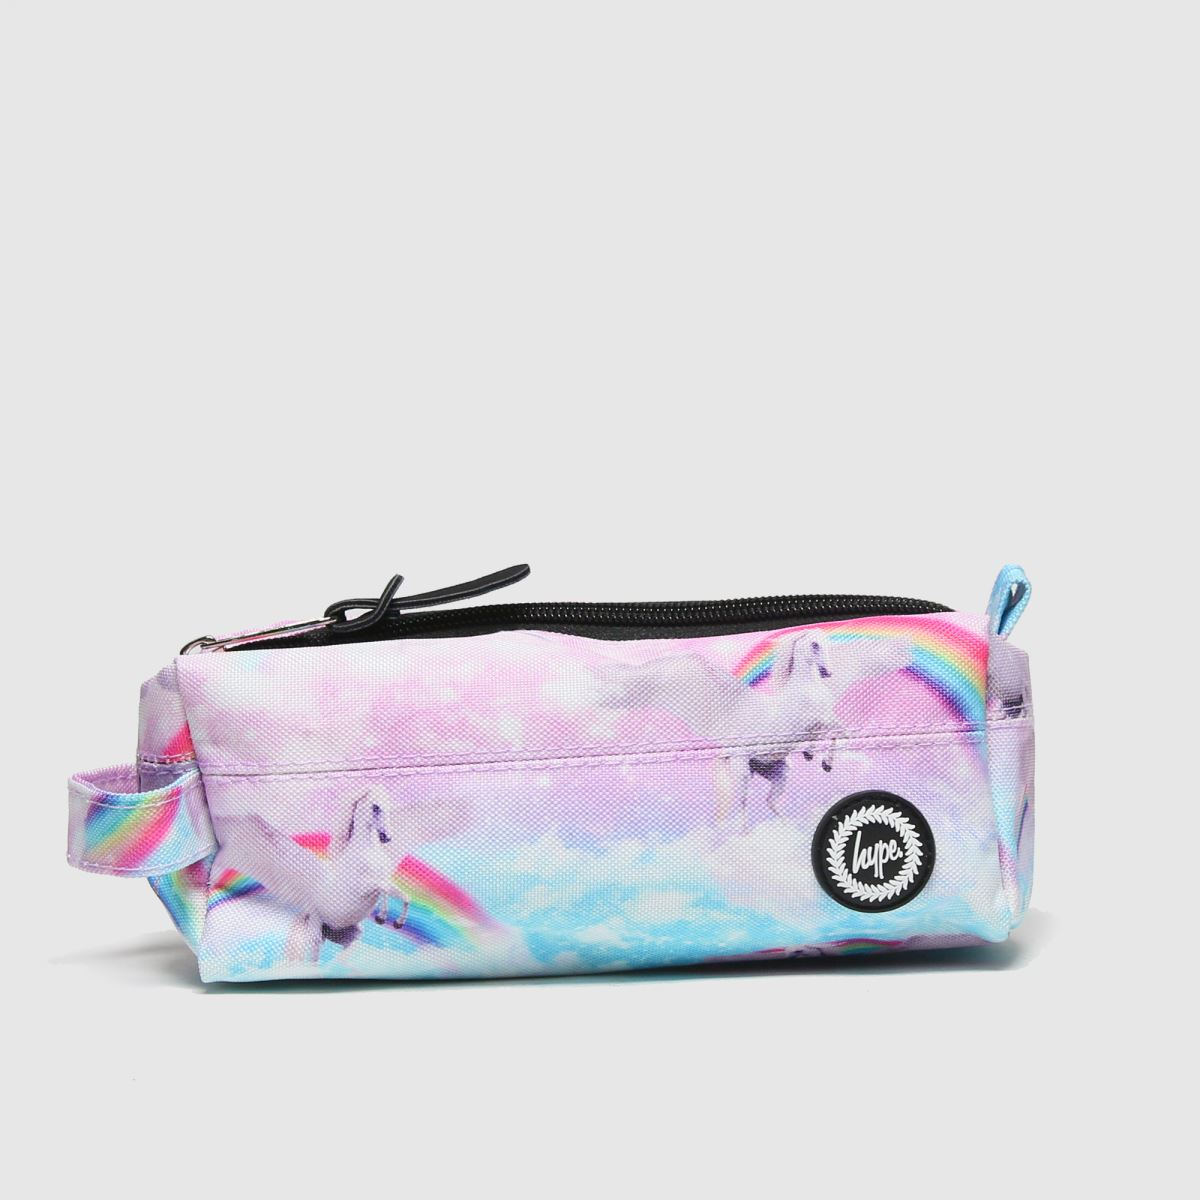 Hype Pale Pink Pencil Case